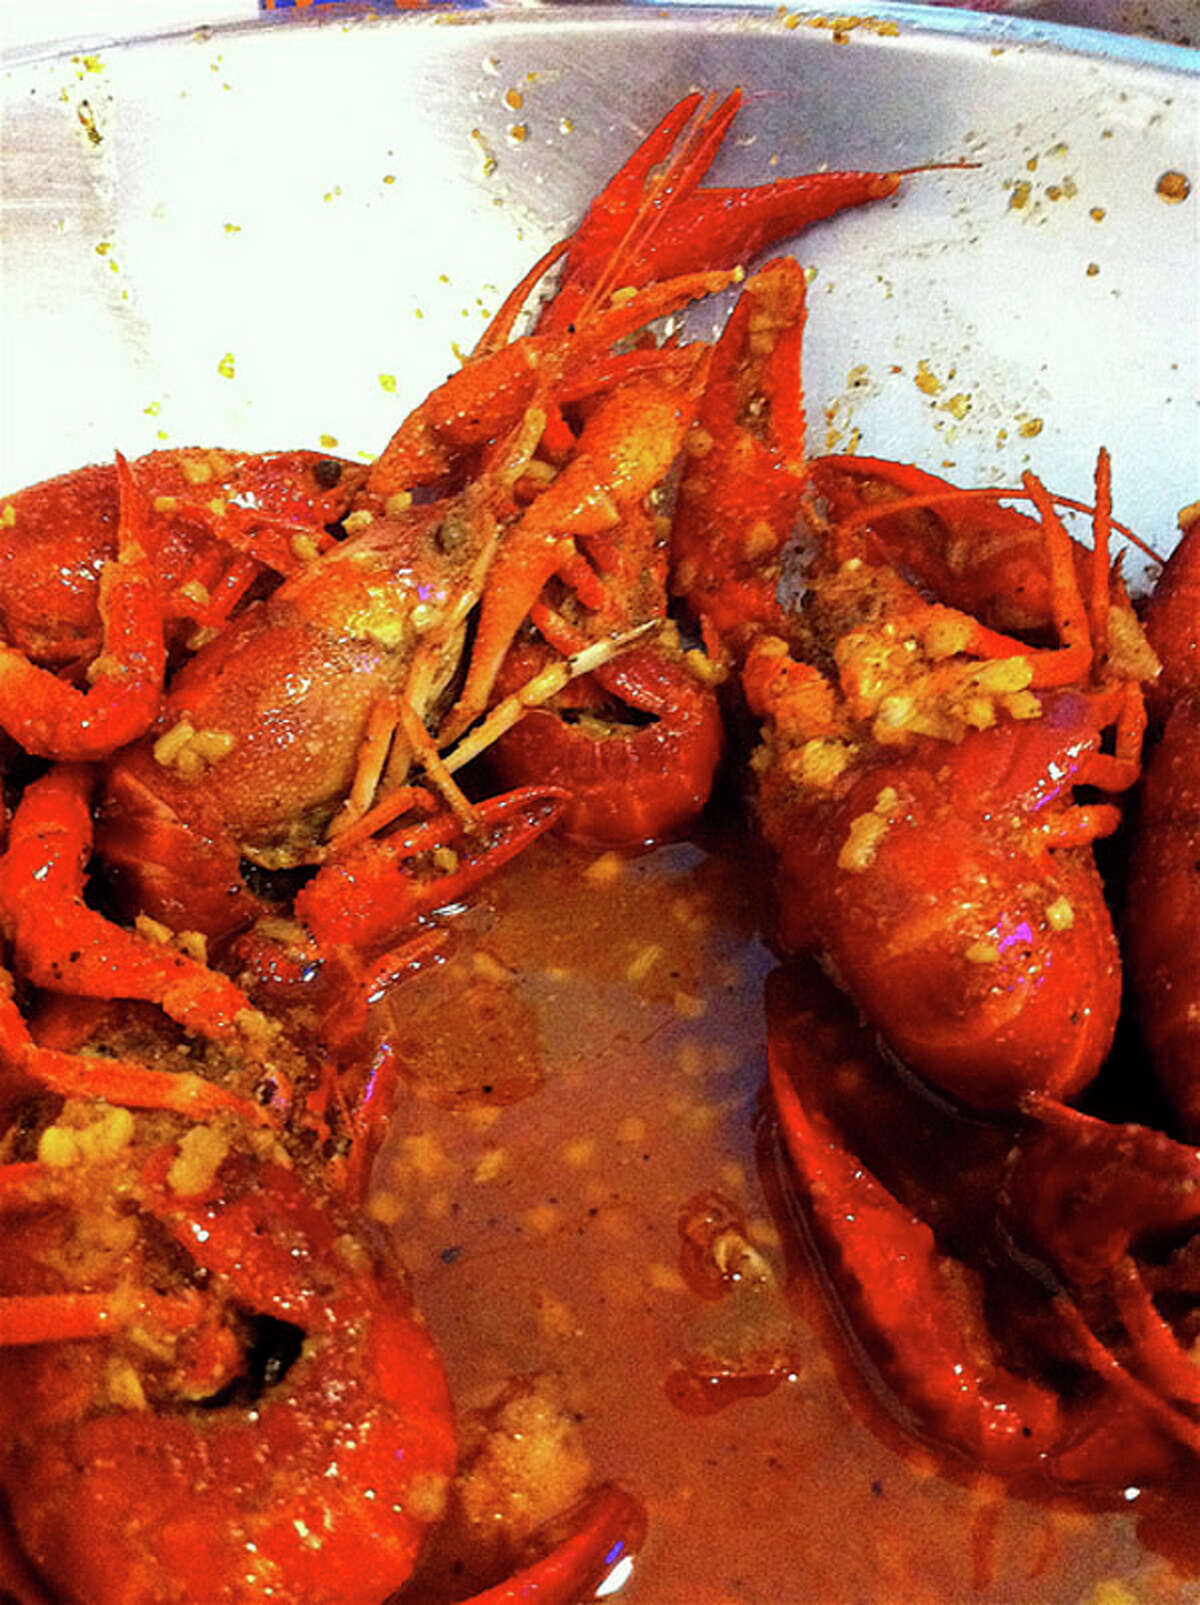 Crawfish & Noodles Chronicle critic Alison Cook says: